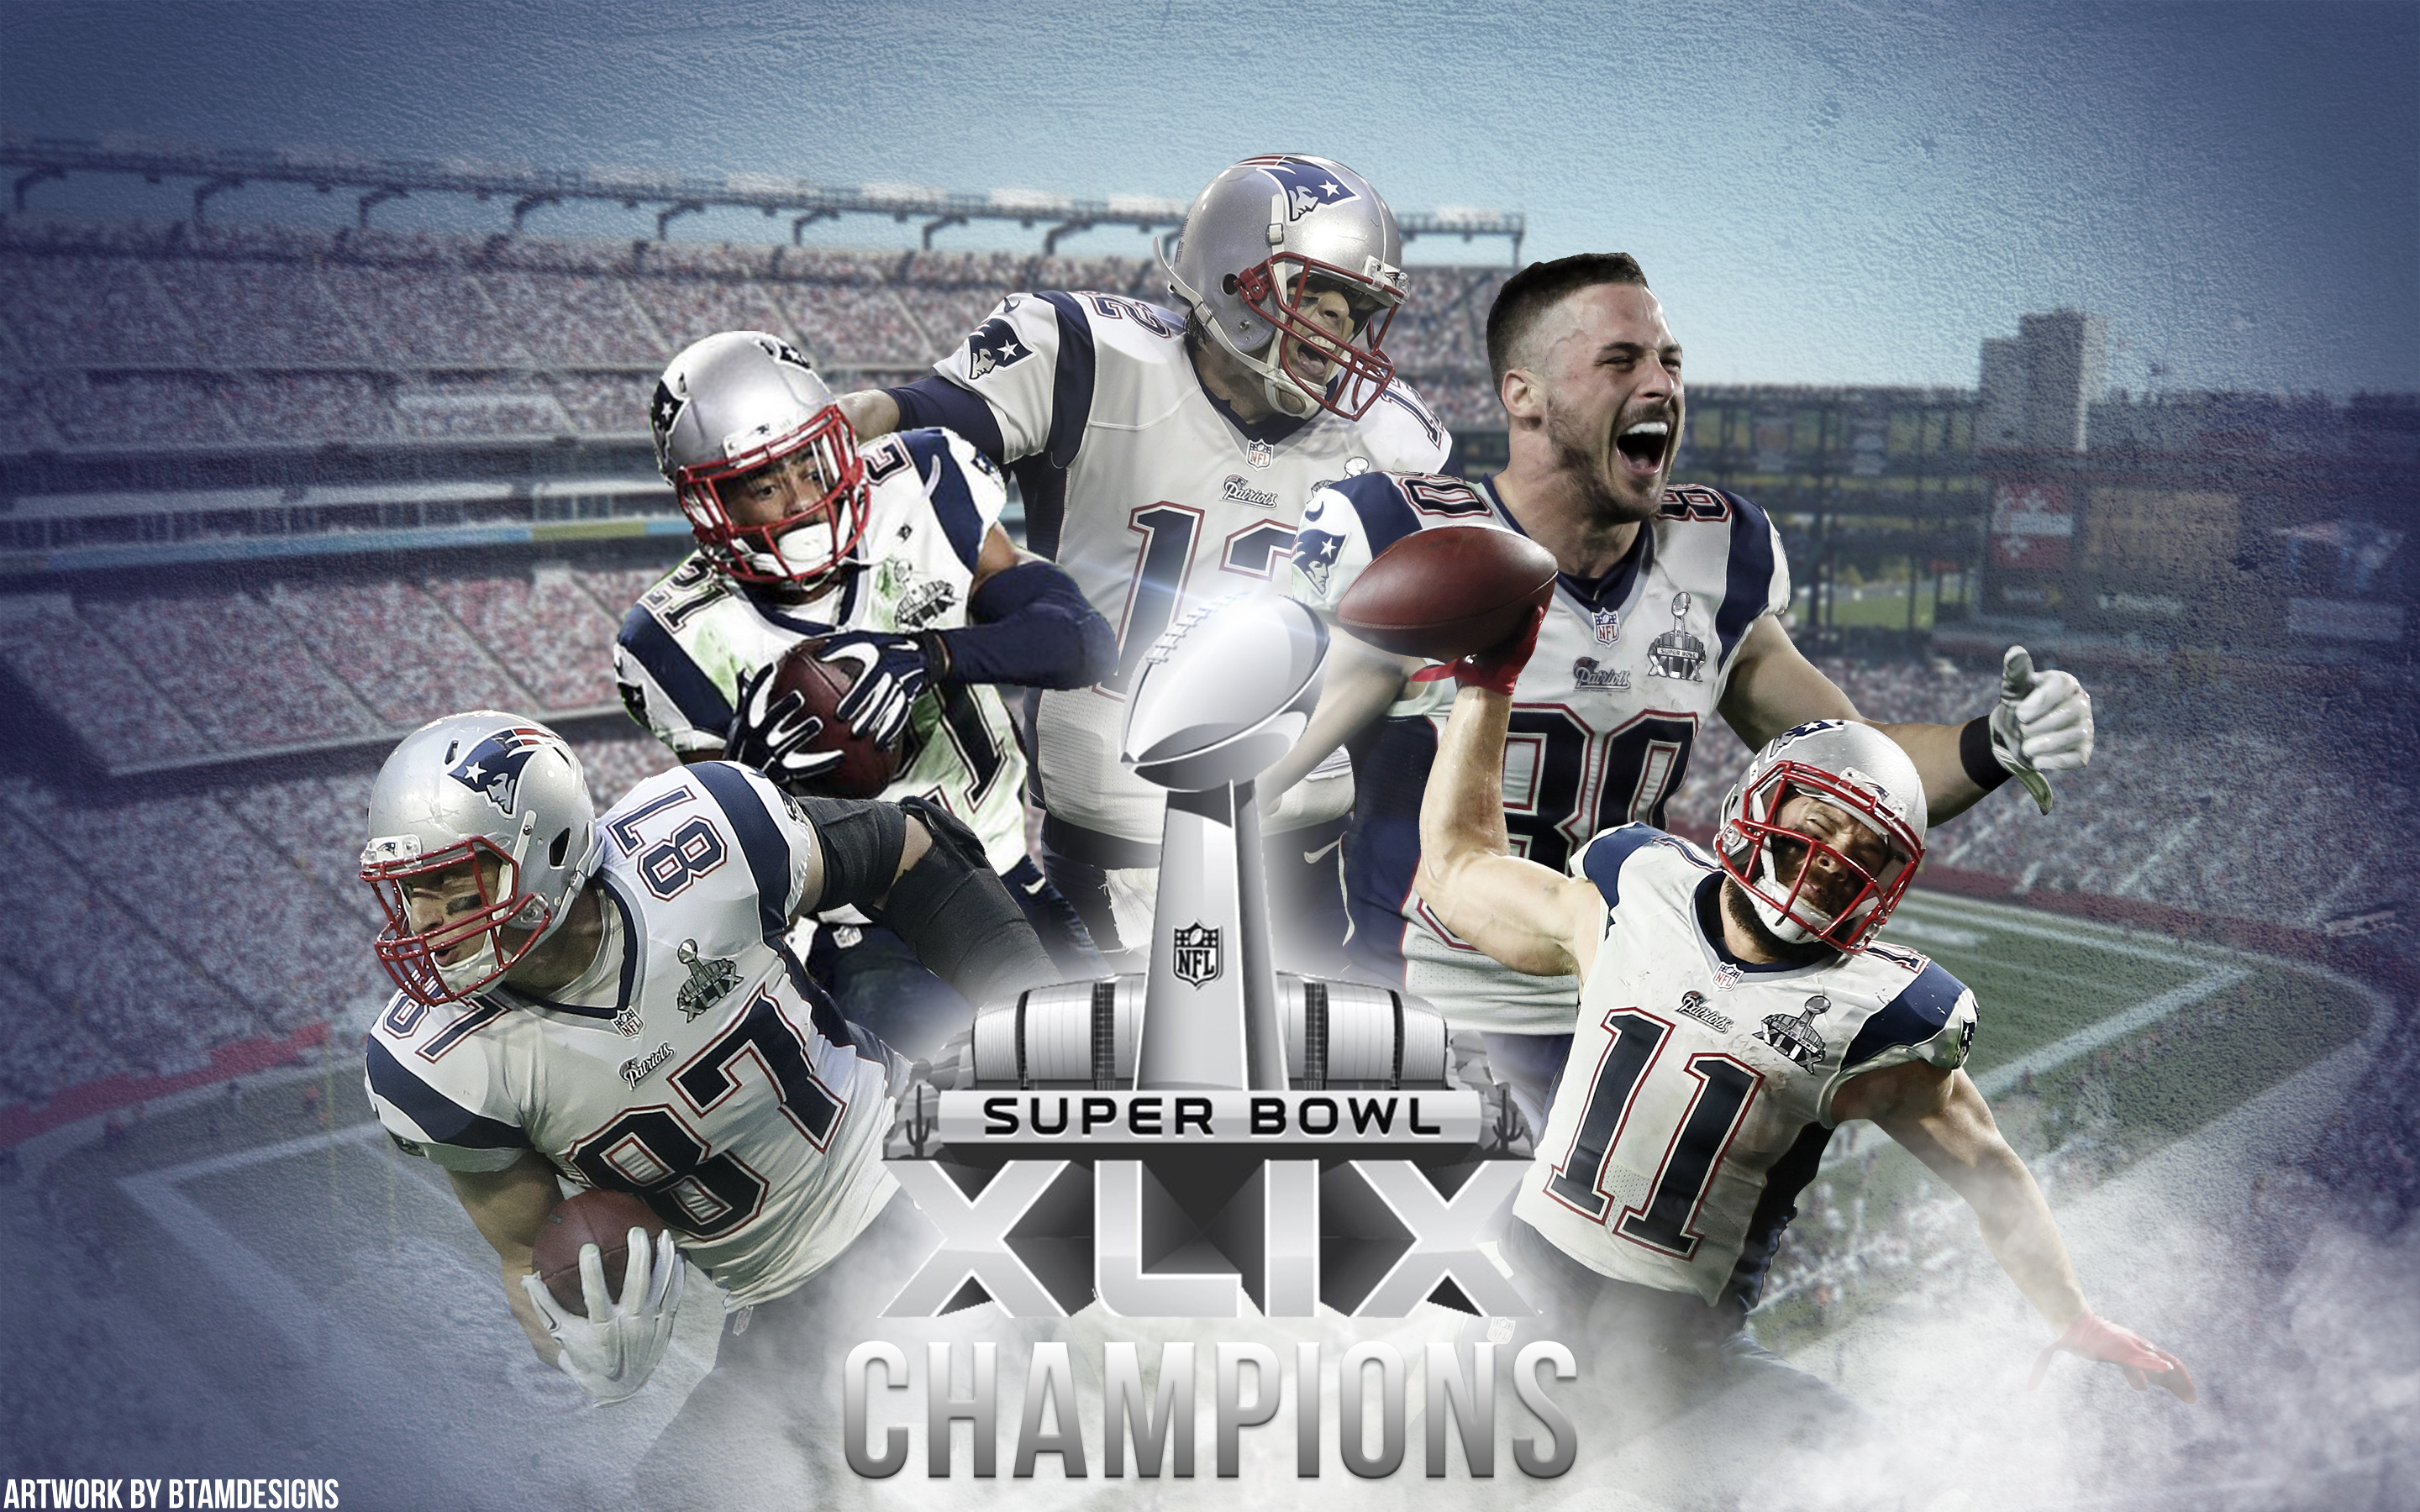 Patriots 'Championship' wallpaper by btamdesigns on DeviantArt